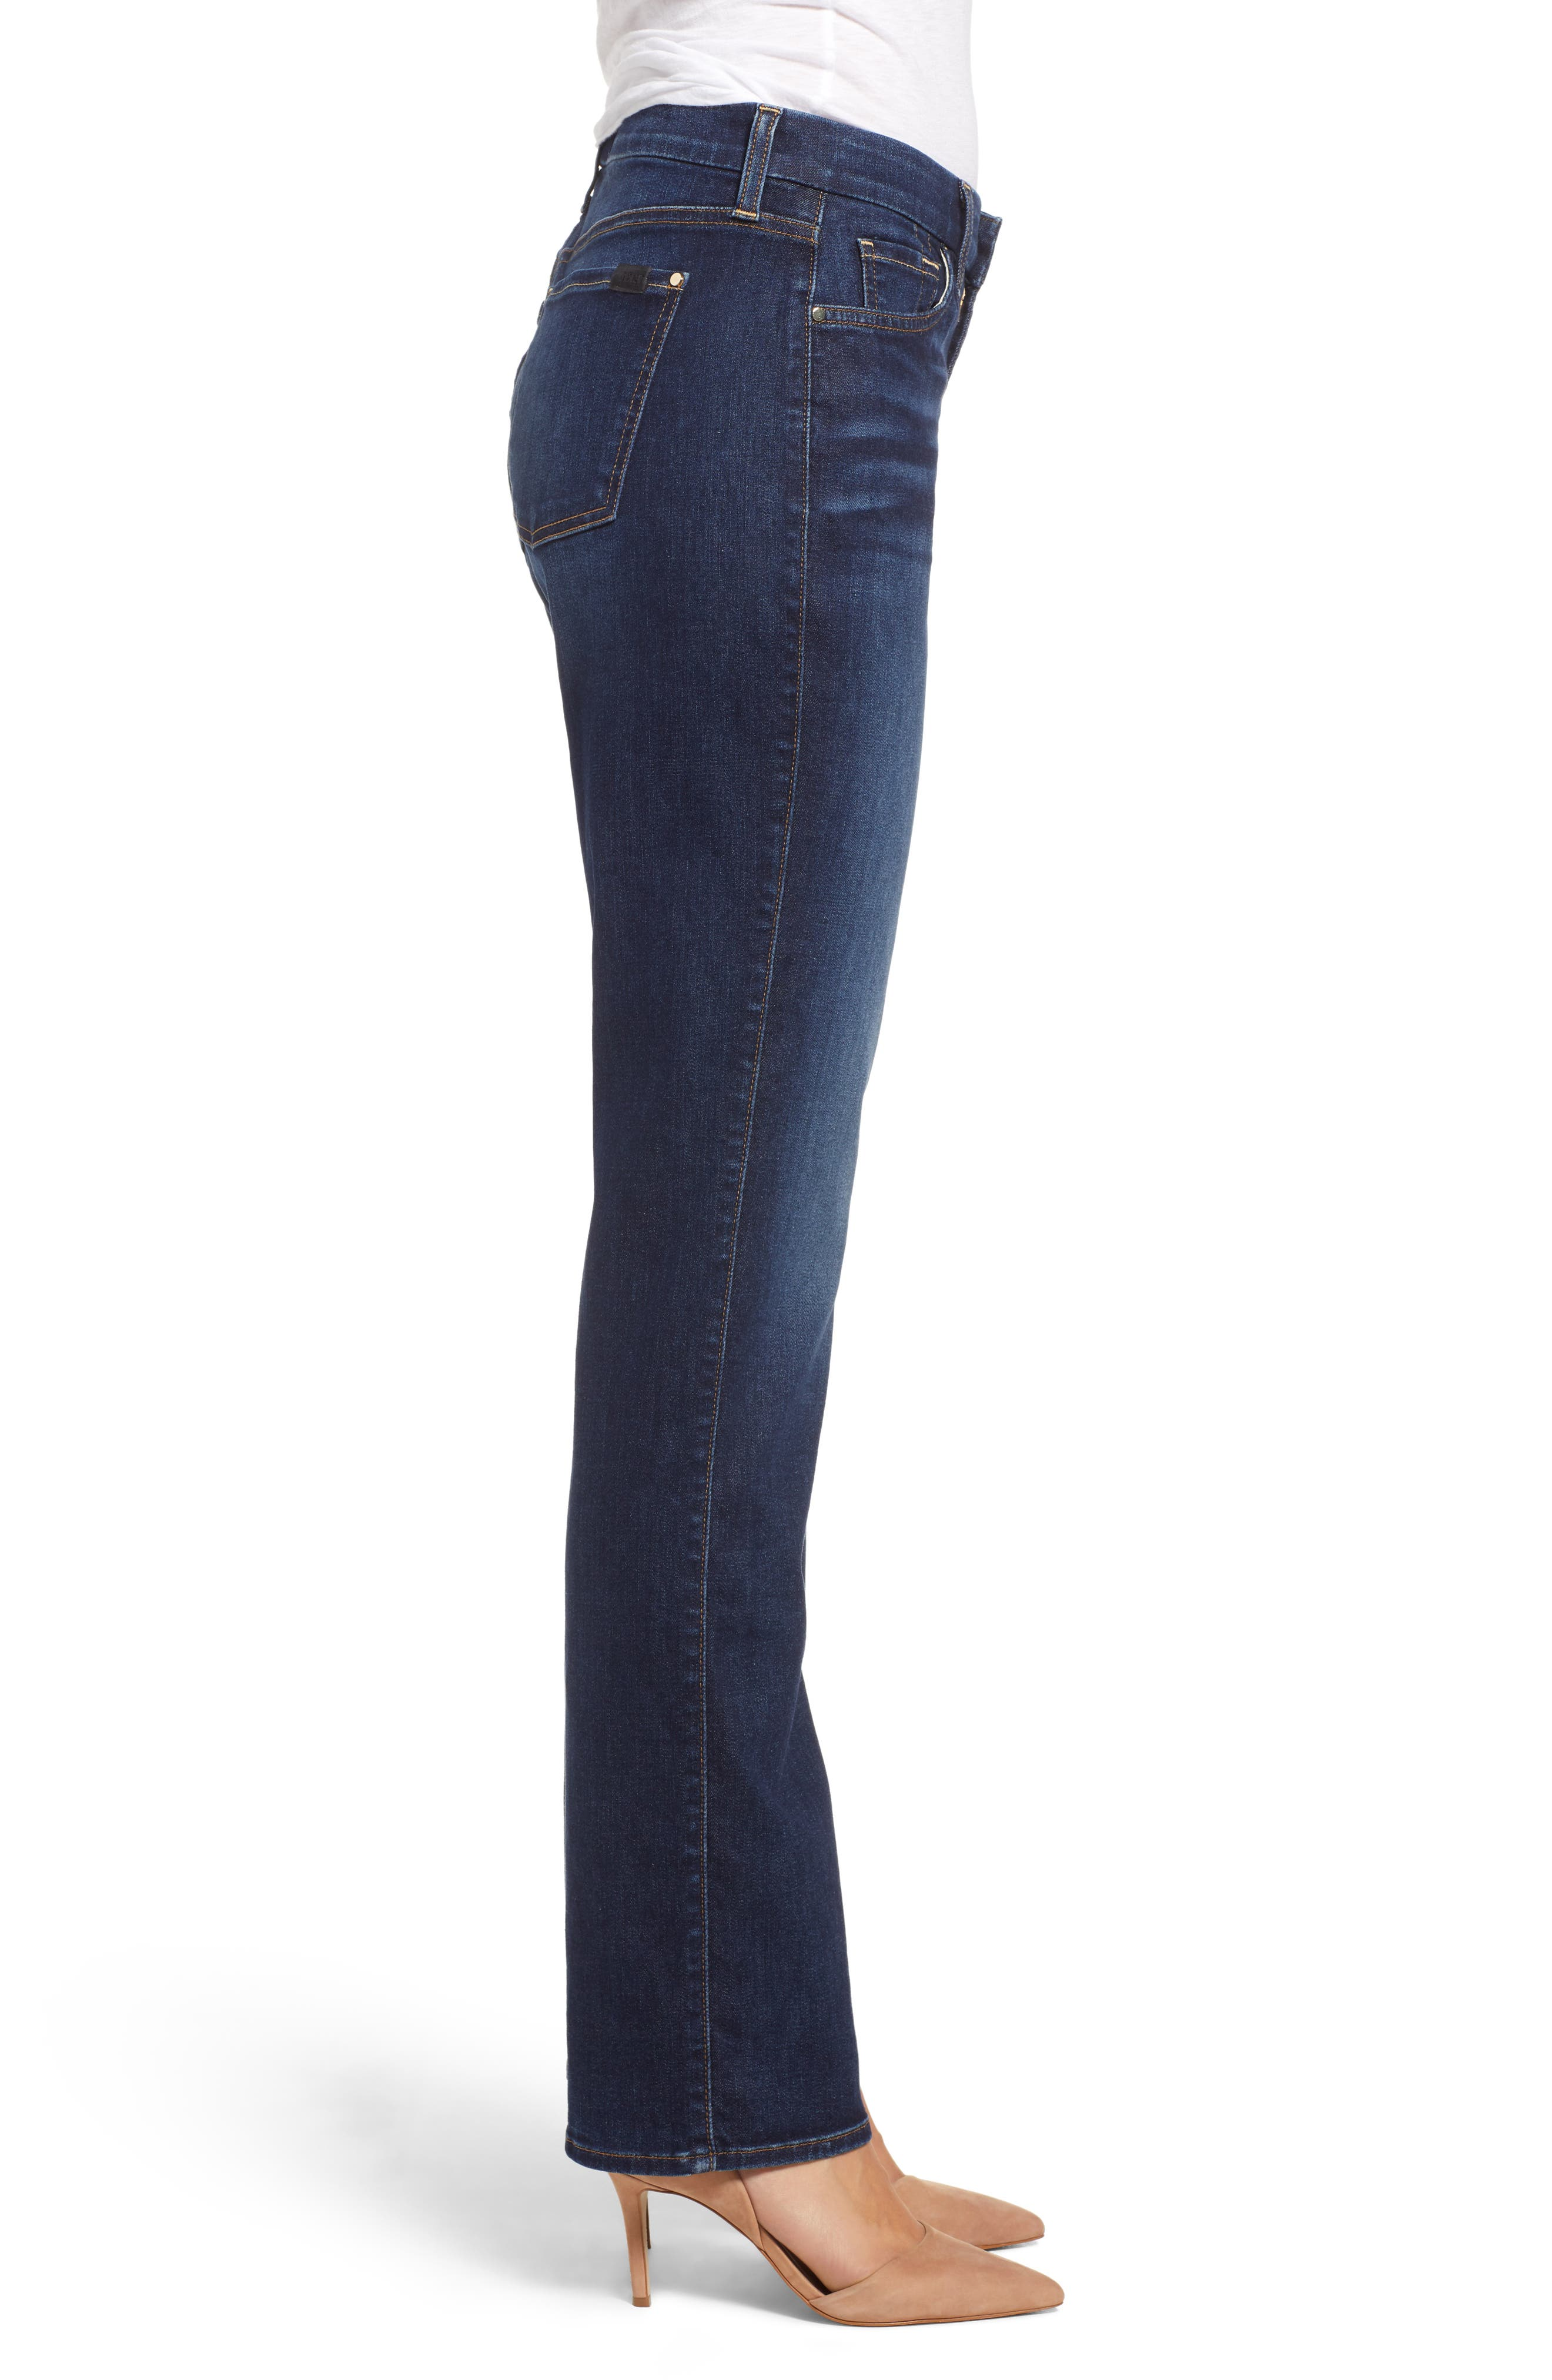 JEN7 BY 7 FOR ALL MANKIND, Stretch Slim Straight Leg Jeans, Alternate thumbnail 4, color, 400